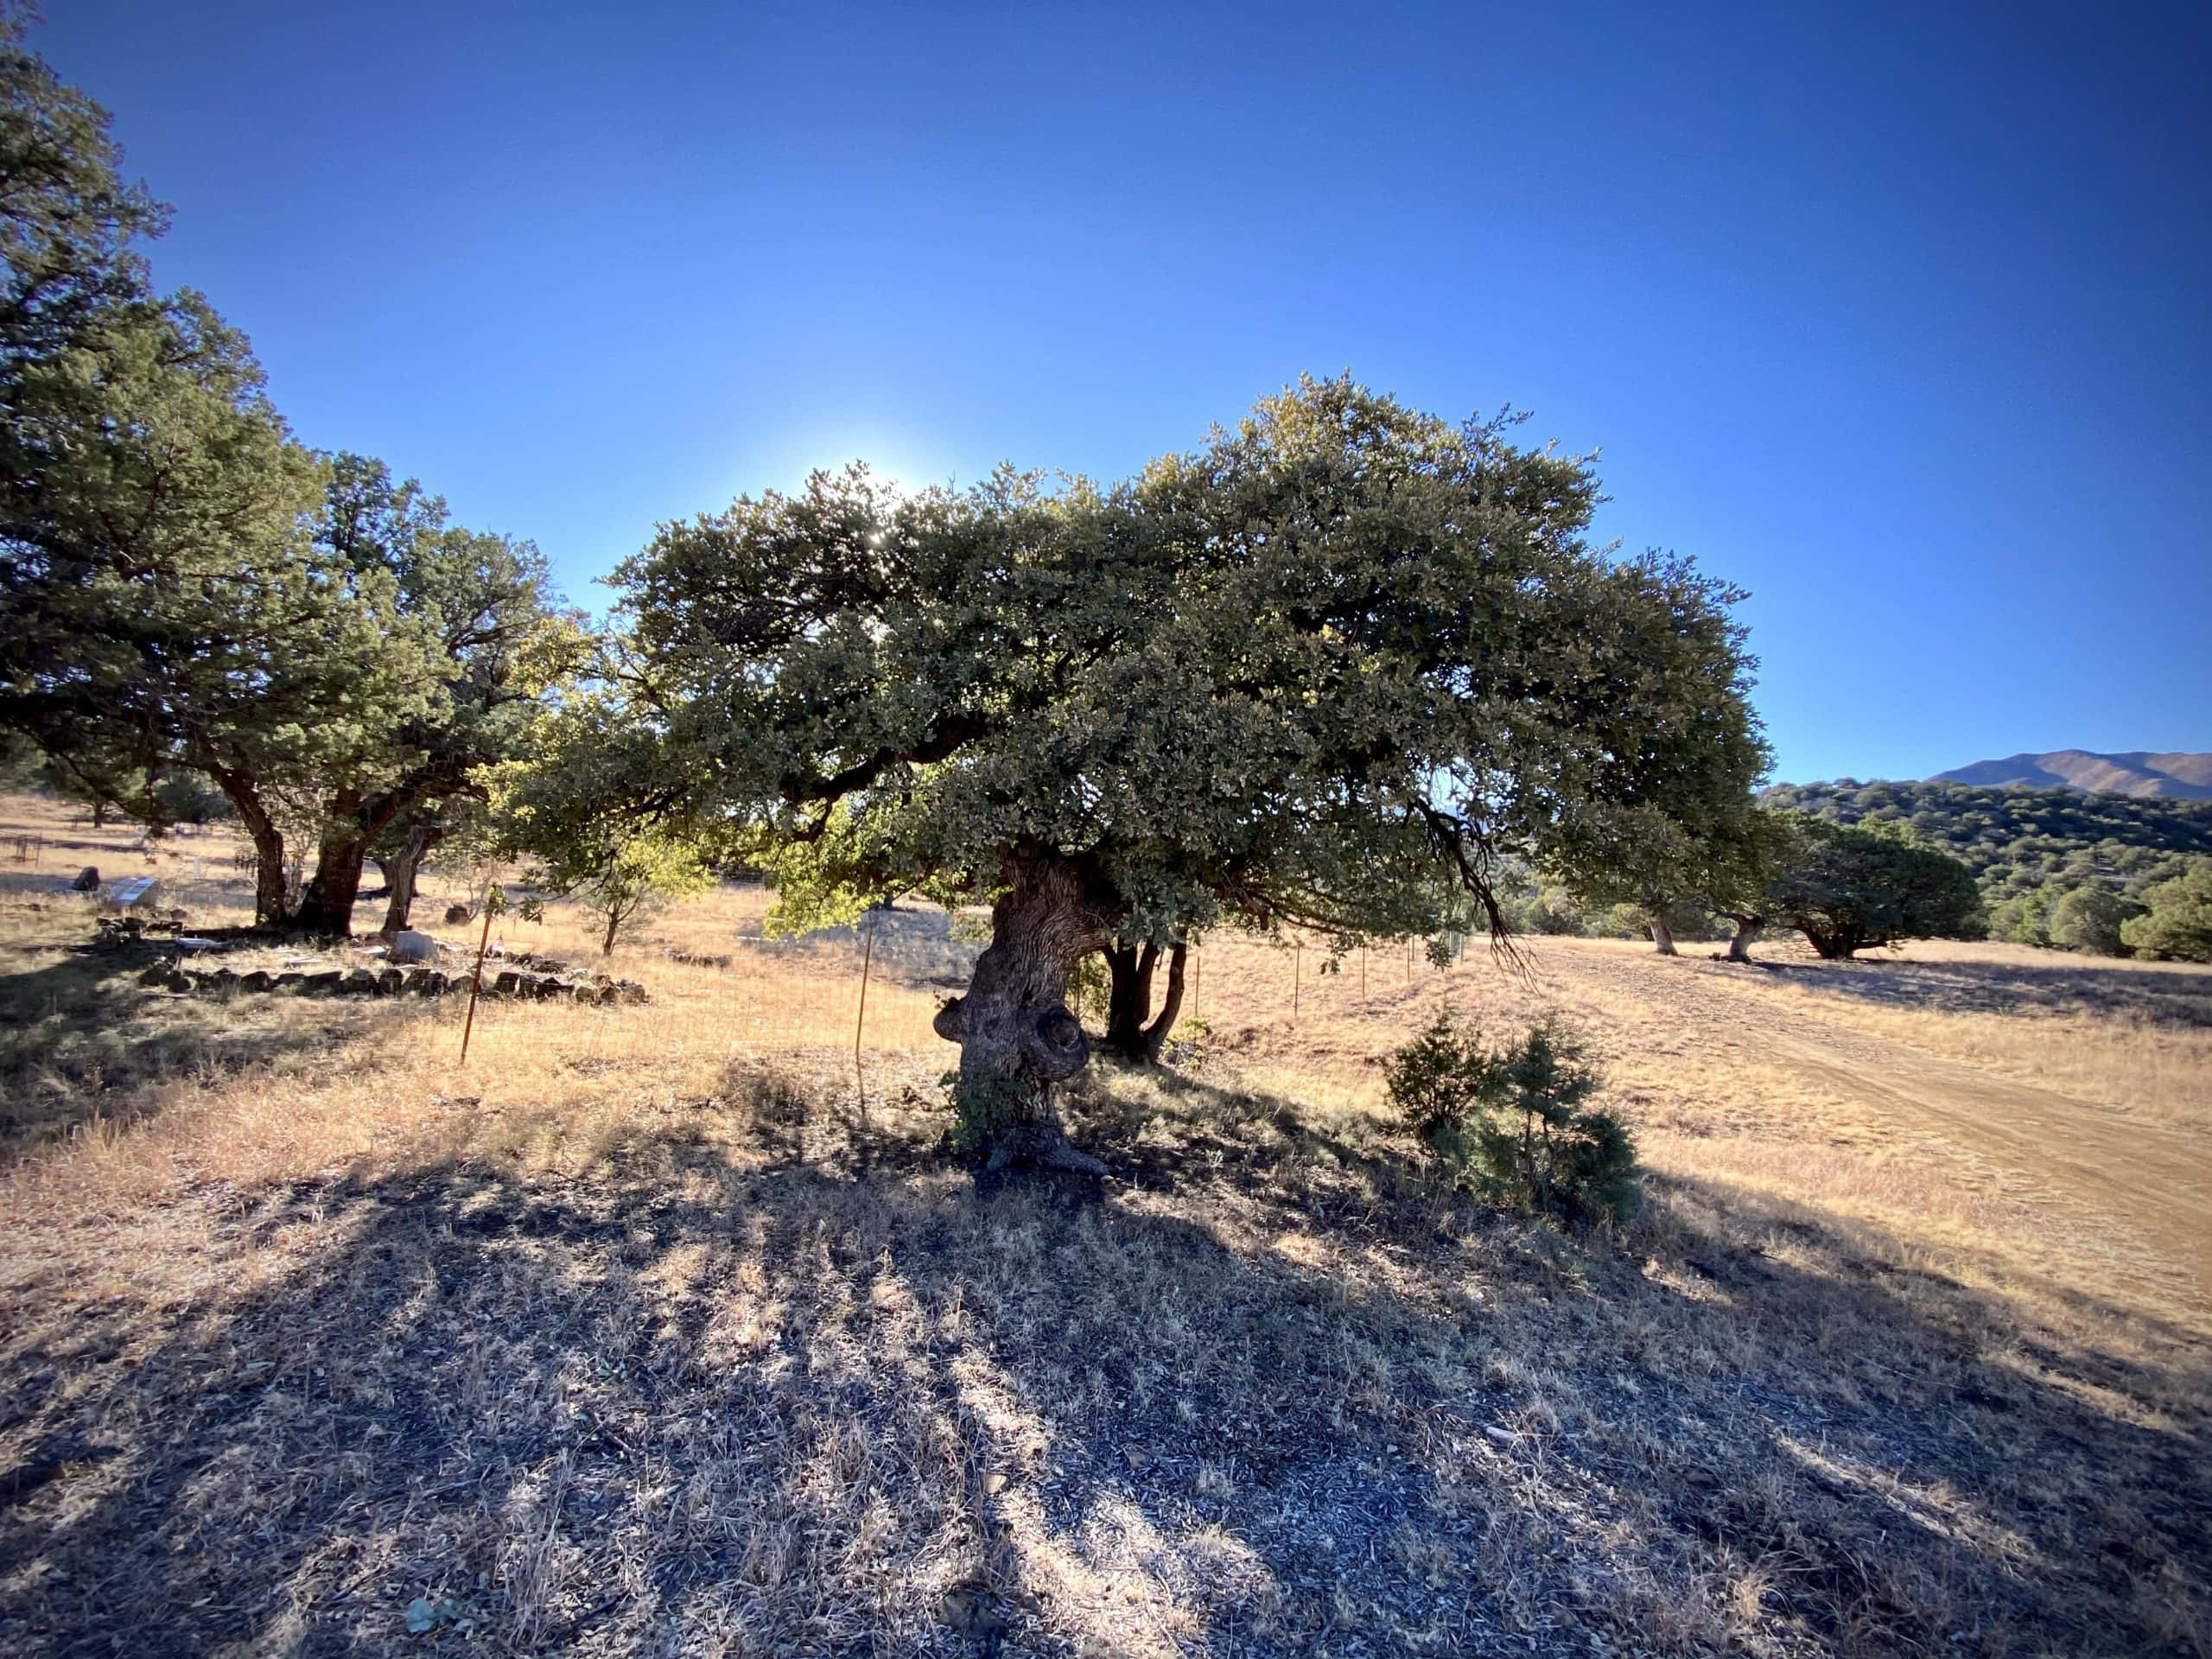 Big oak tree in the Chiricahua Mountains of the Coronado National Forest.